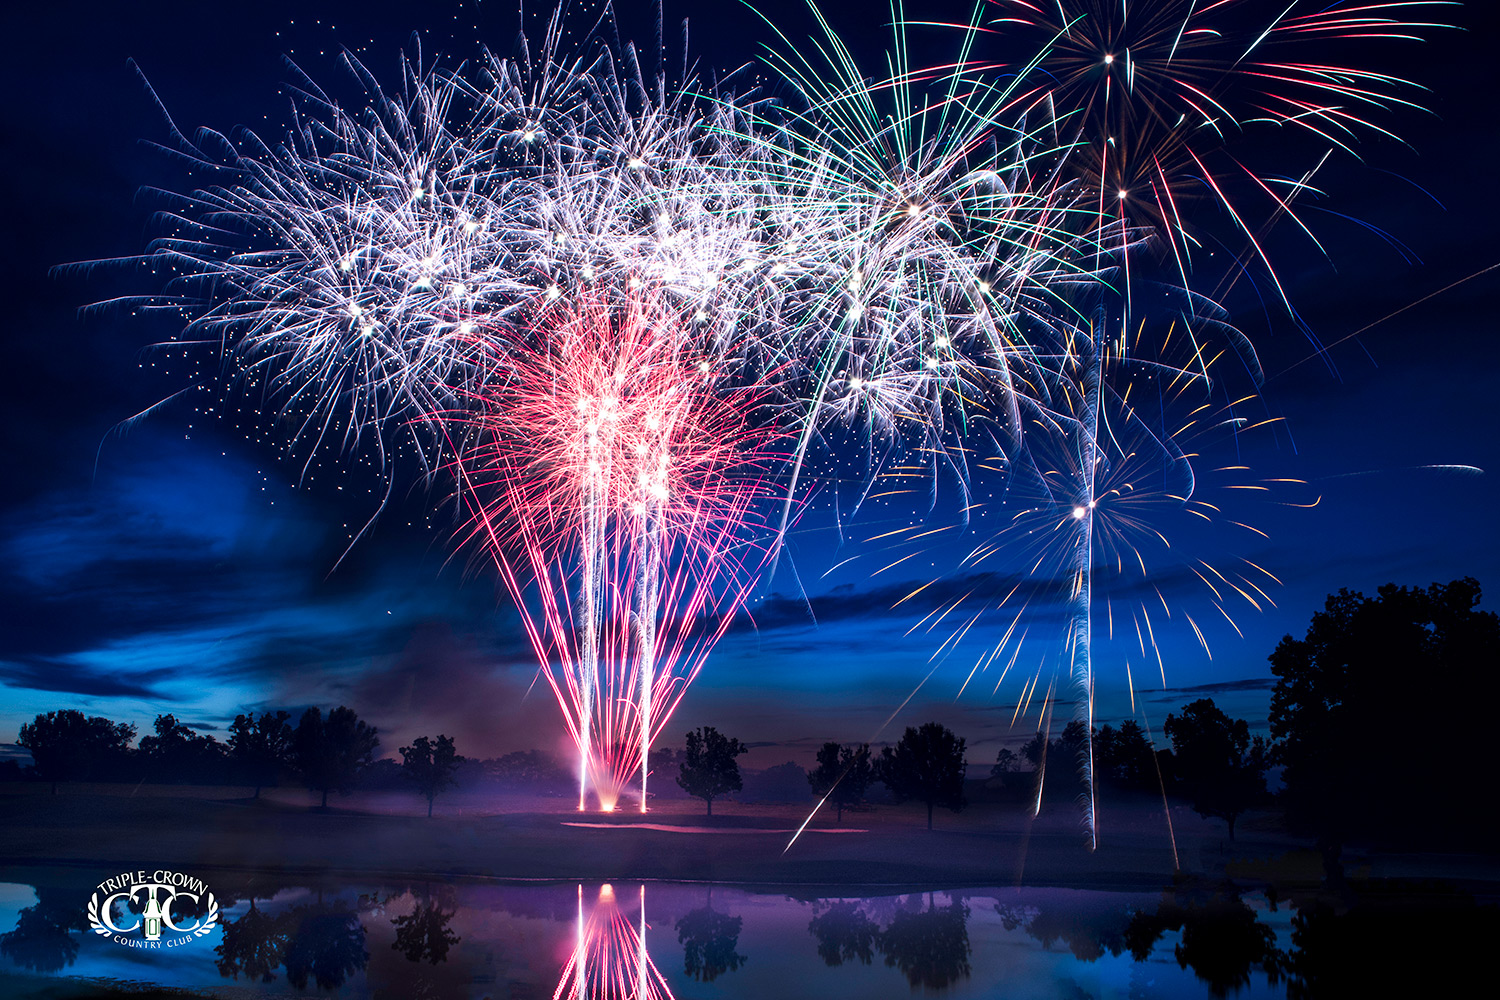 TCCC-Fireworks-4-2;3-ratio-copy